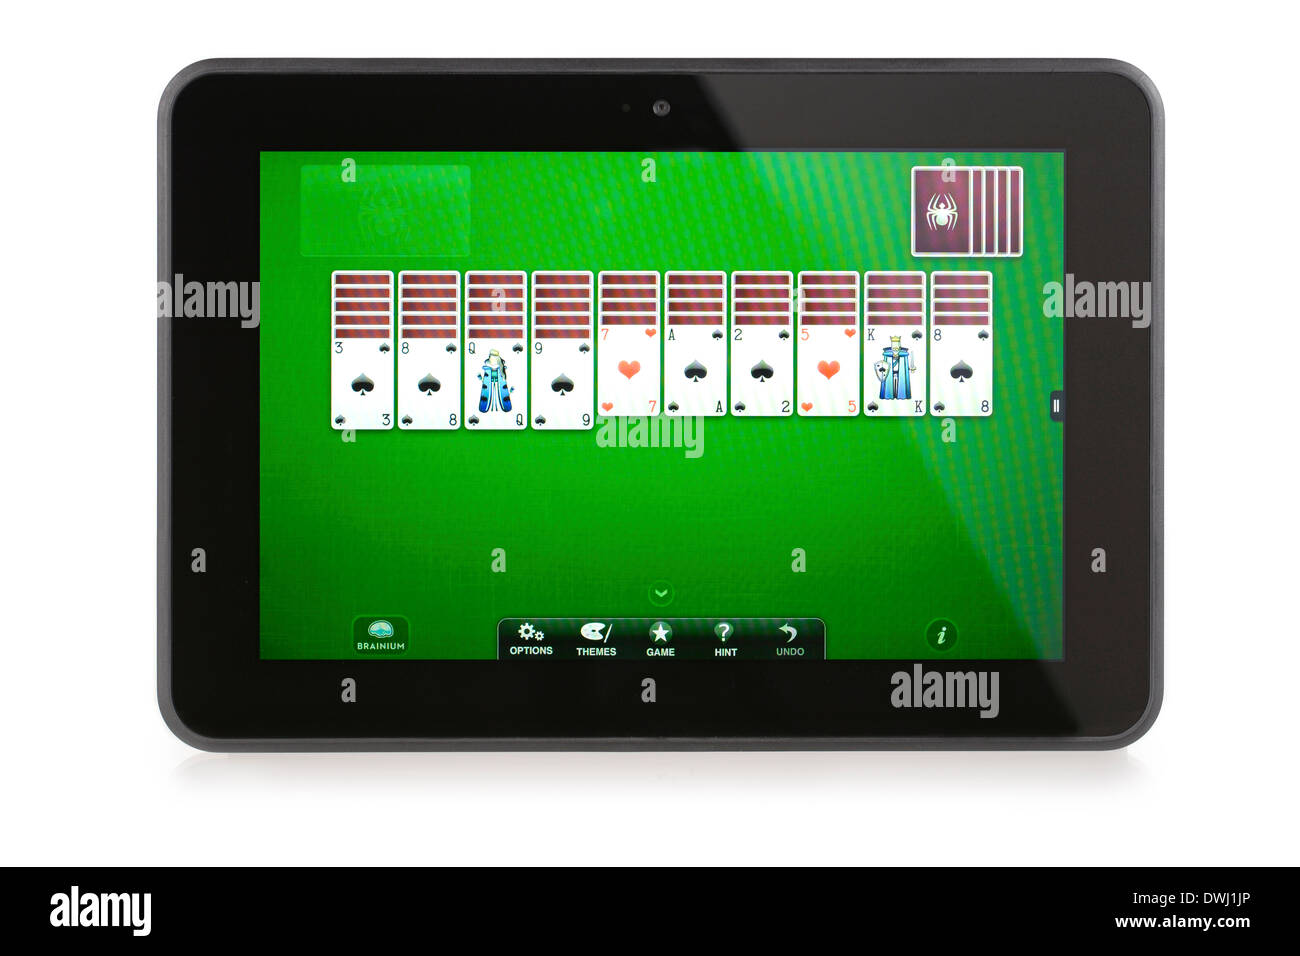 Game Of Solitaire Stockfotos & Game Of Solitaire Bilder - Alamy